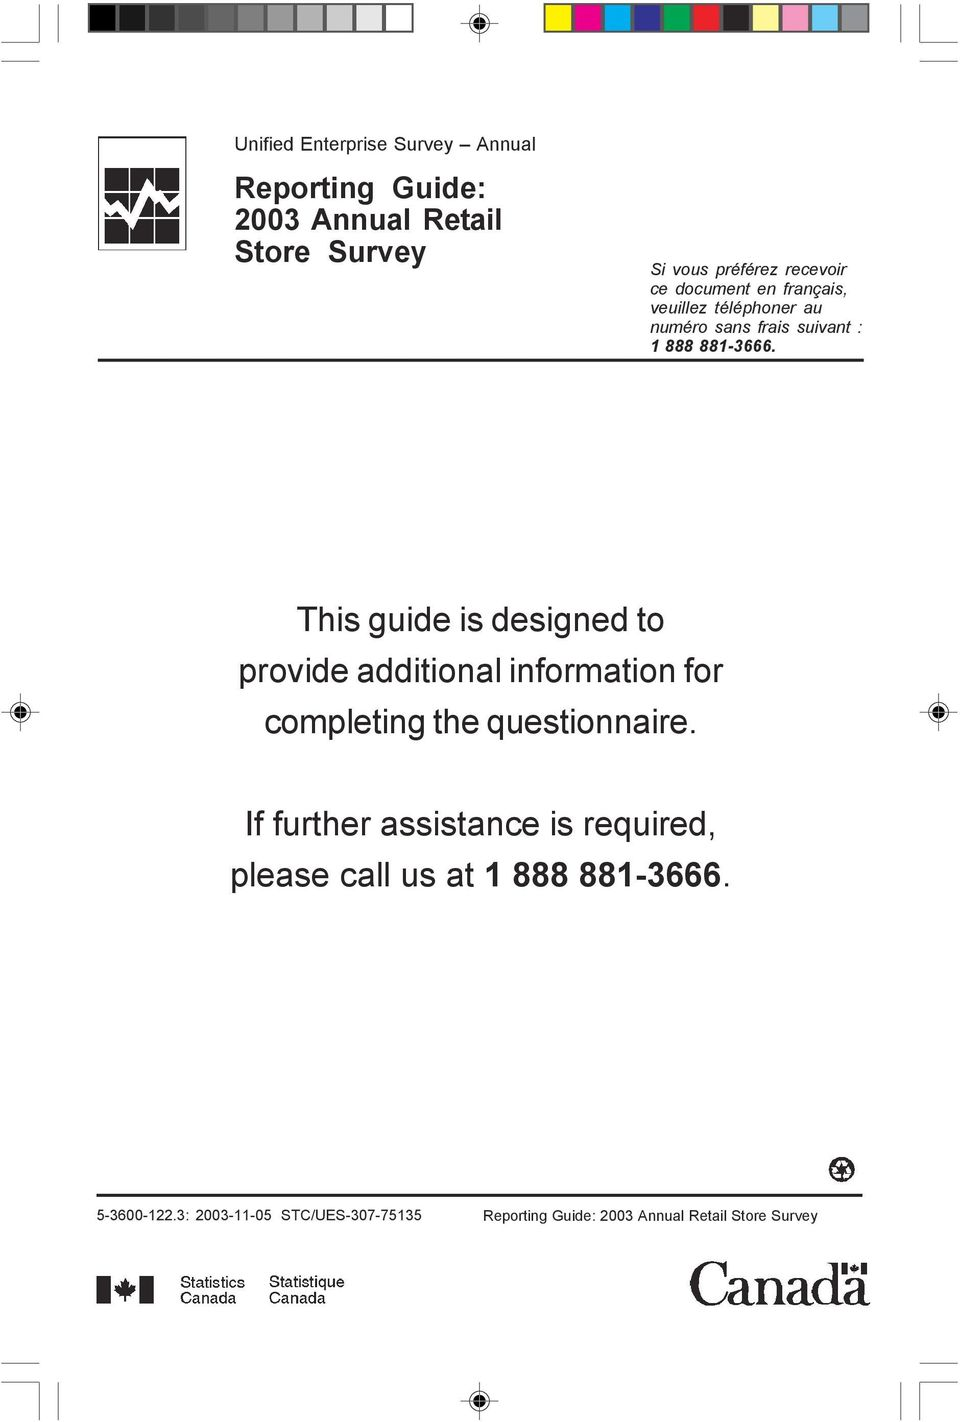 This guide is designed to provide additional information for completing the questionnaire.